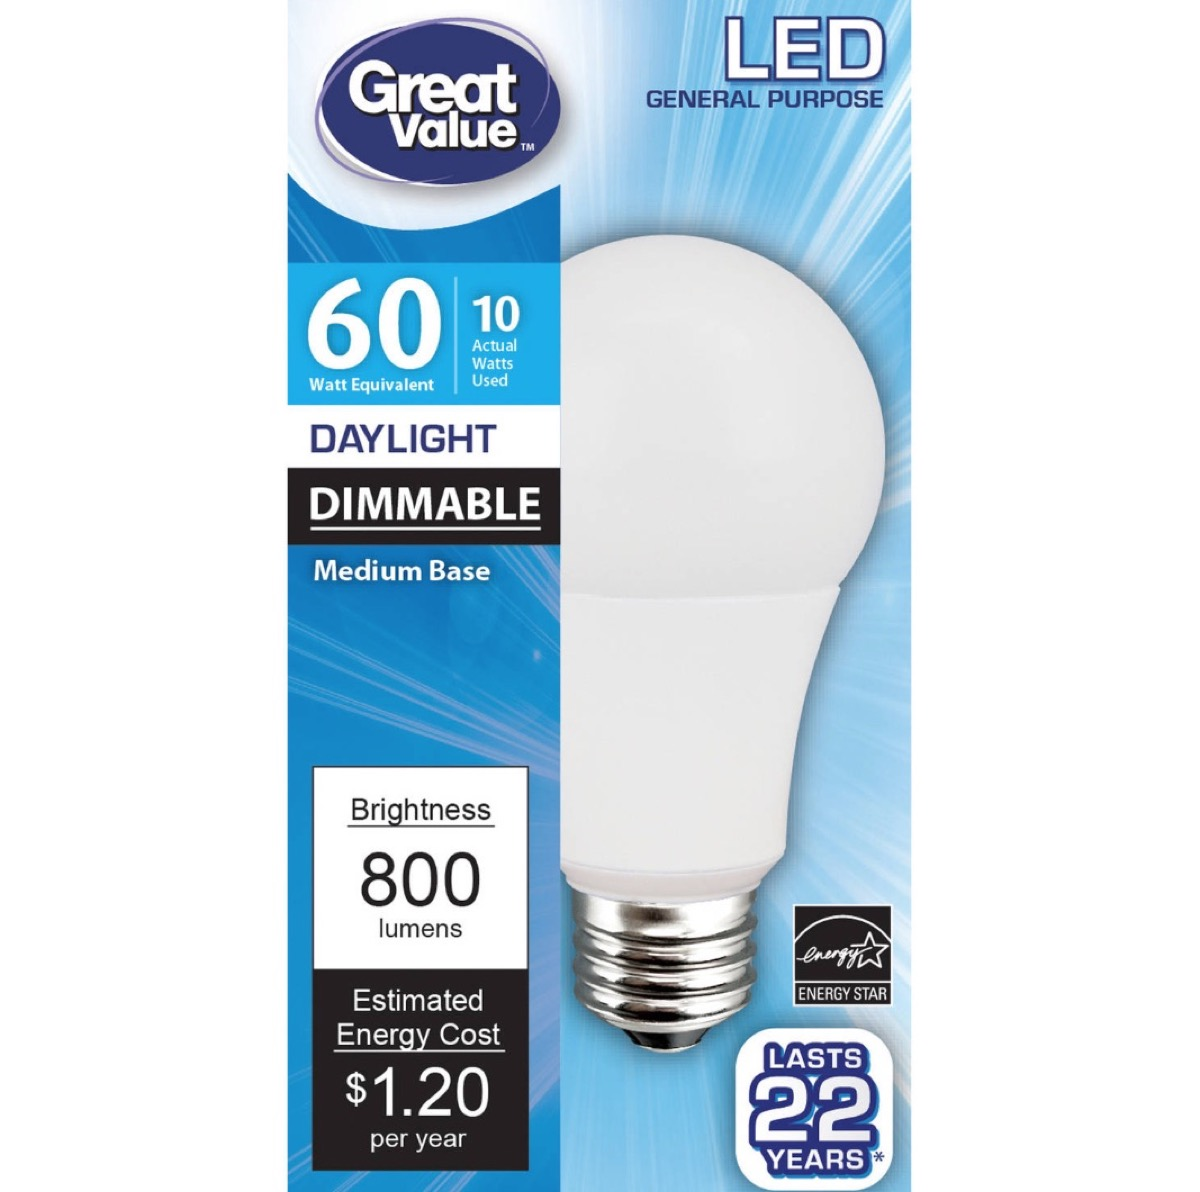 Walmart LED Light {Best Generic Products from Walmart}